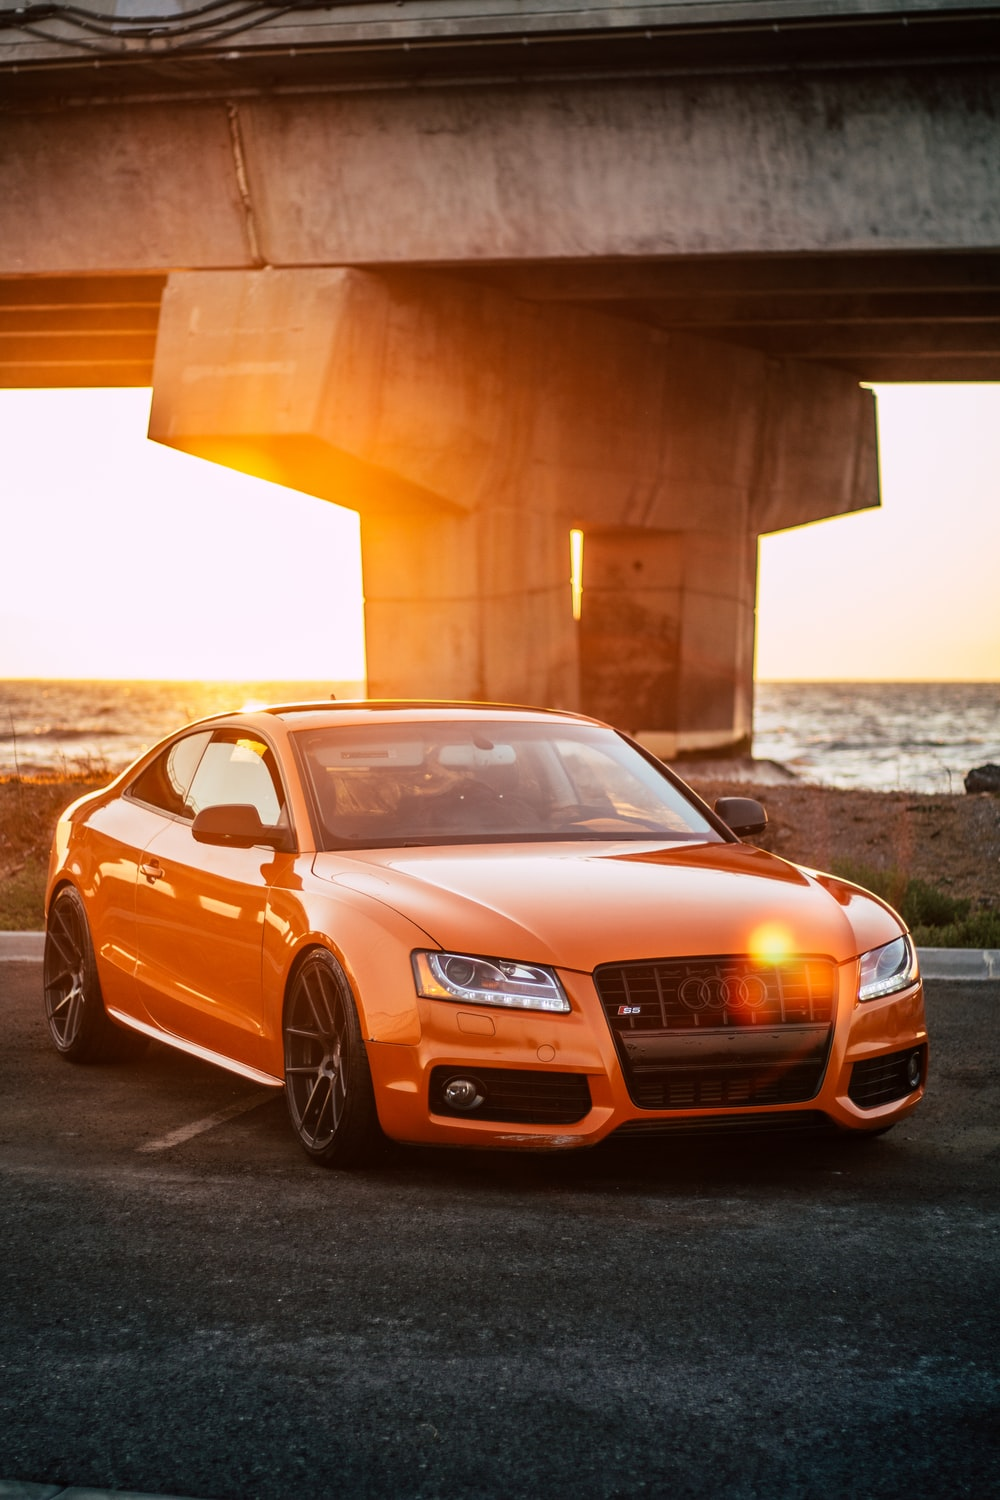 Audi S Sunset Photo By Dhiva Krishna Dhivakrishna On Unsplash - Sunset audi